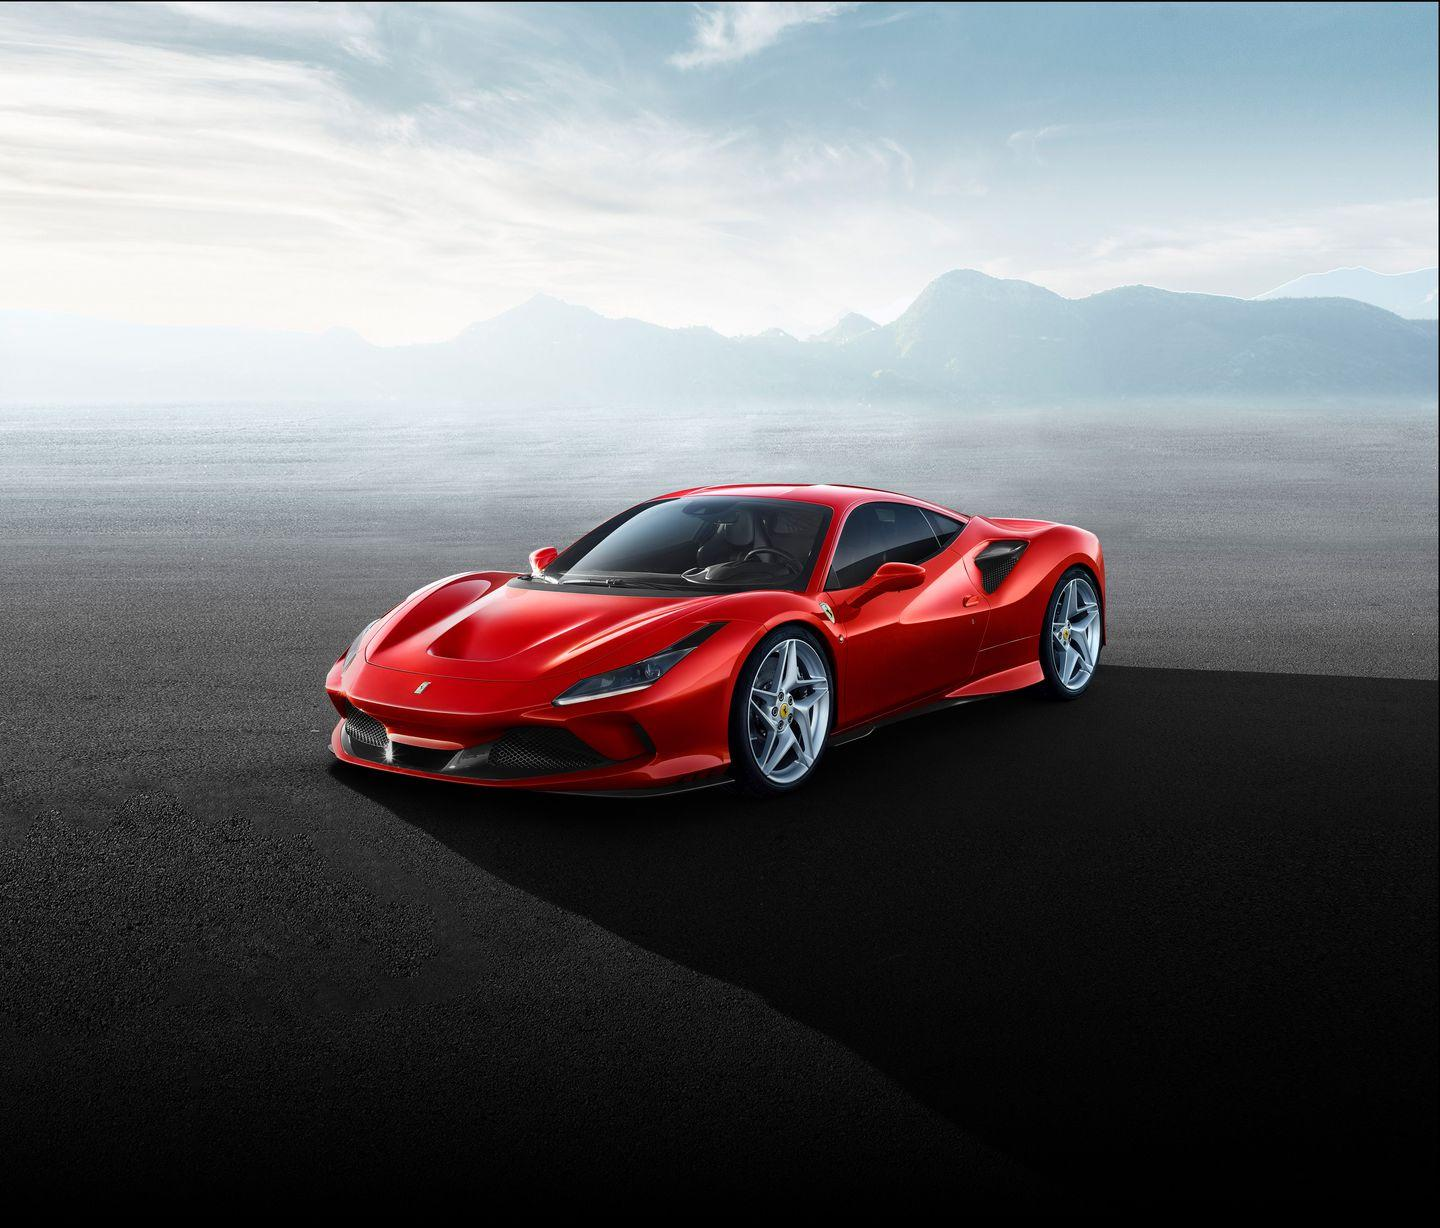 Ferrari F8 Tributo Engine: Every Mid-Engined Sports Car—Including A Few You Might Afford